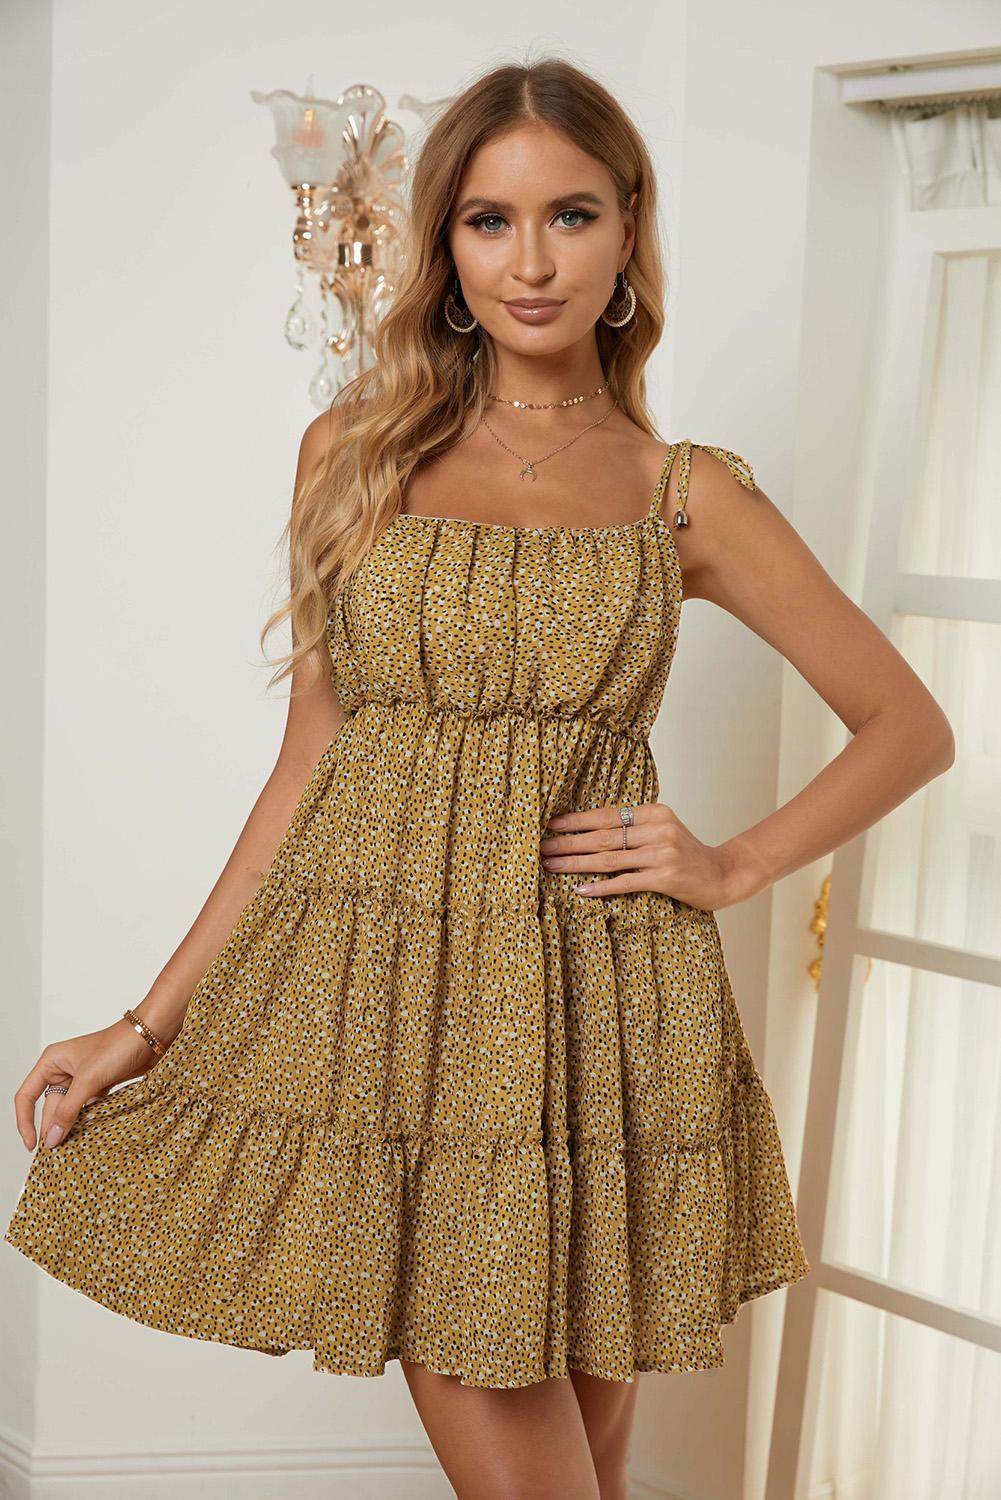 KaleaBoutique Stylish Yellow A-line Layered Ruffled Floral Dress - KaleaBoutique.com